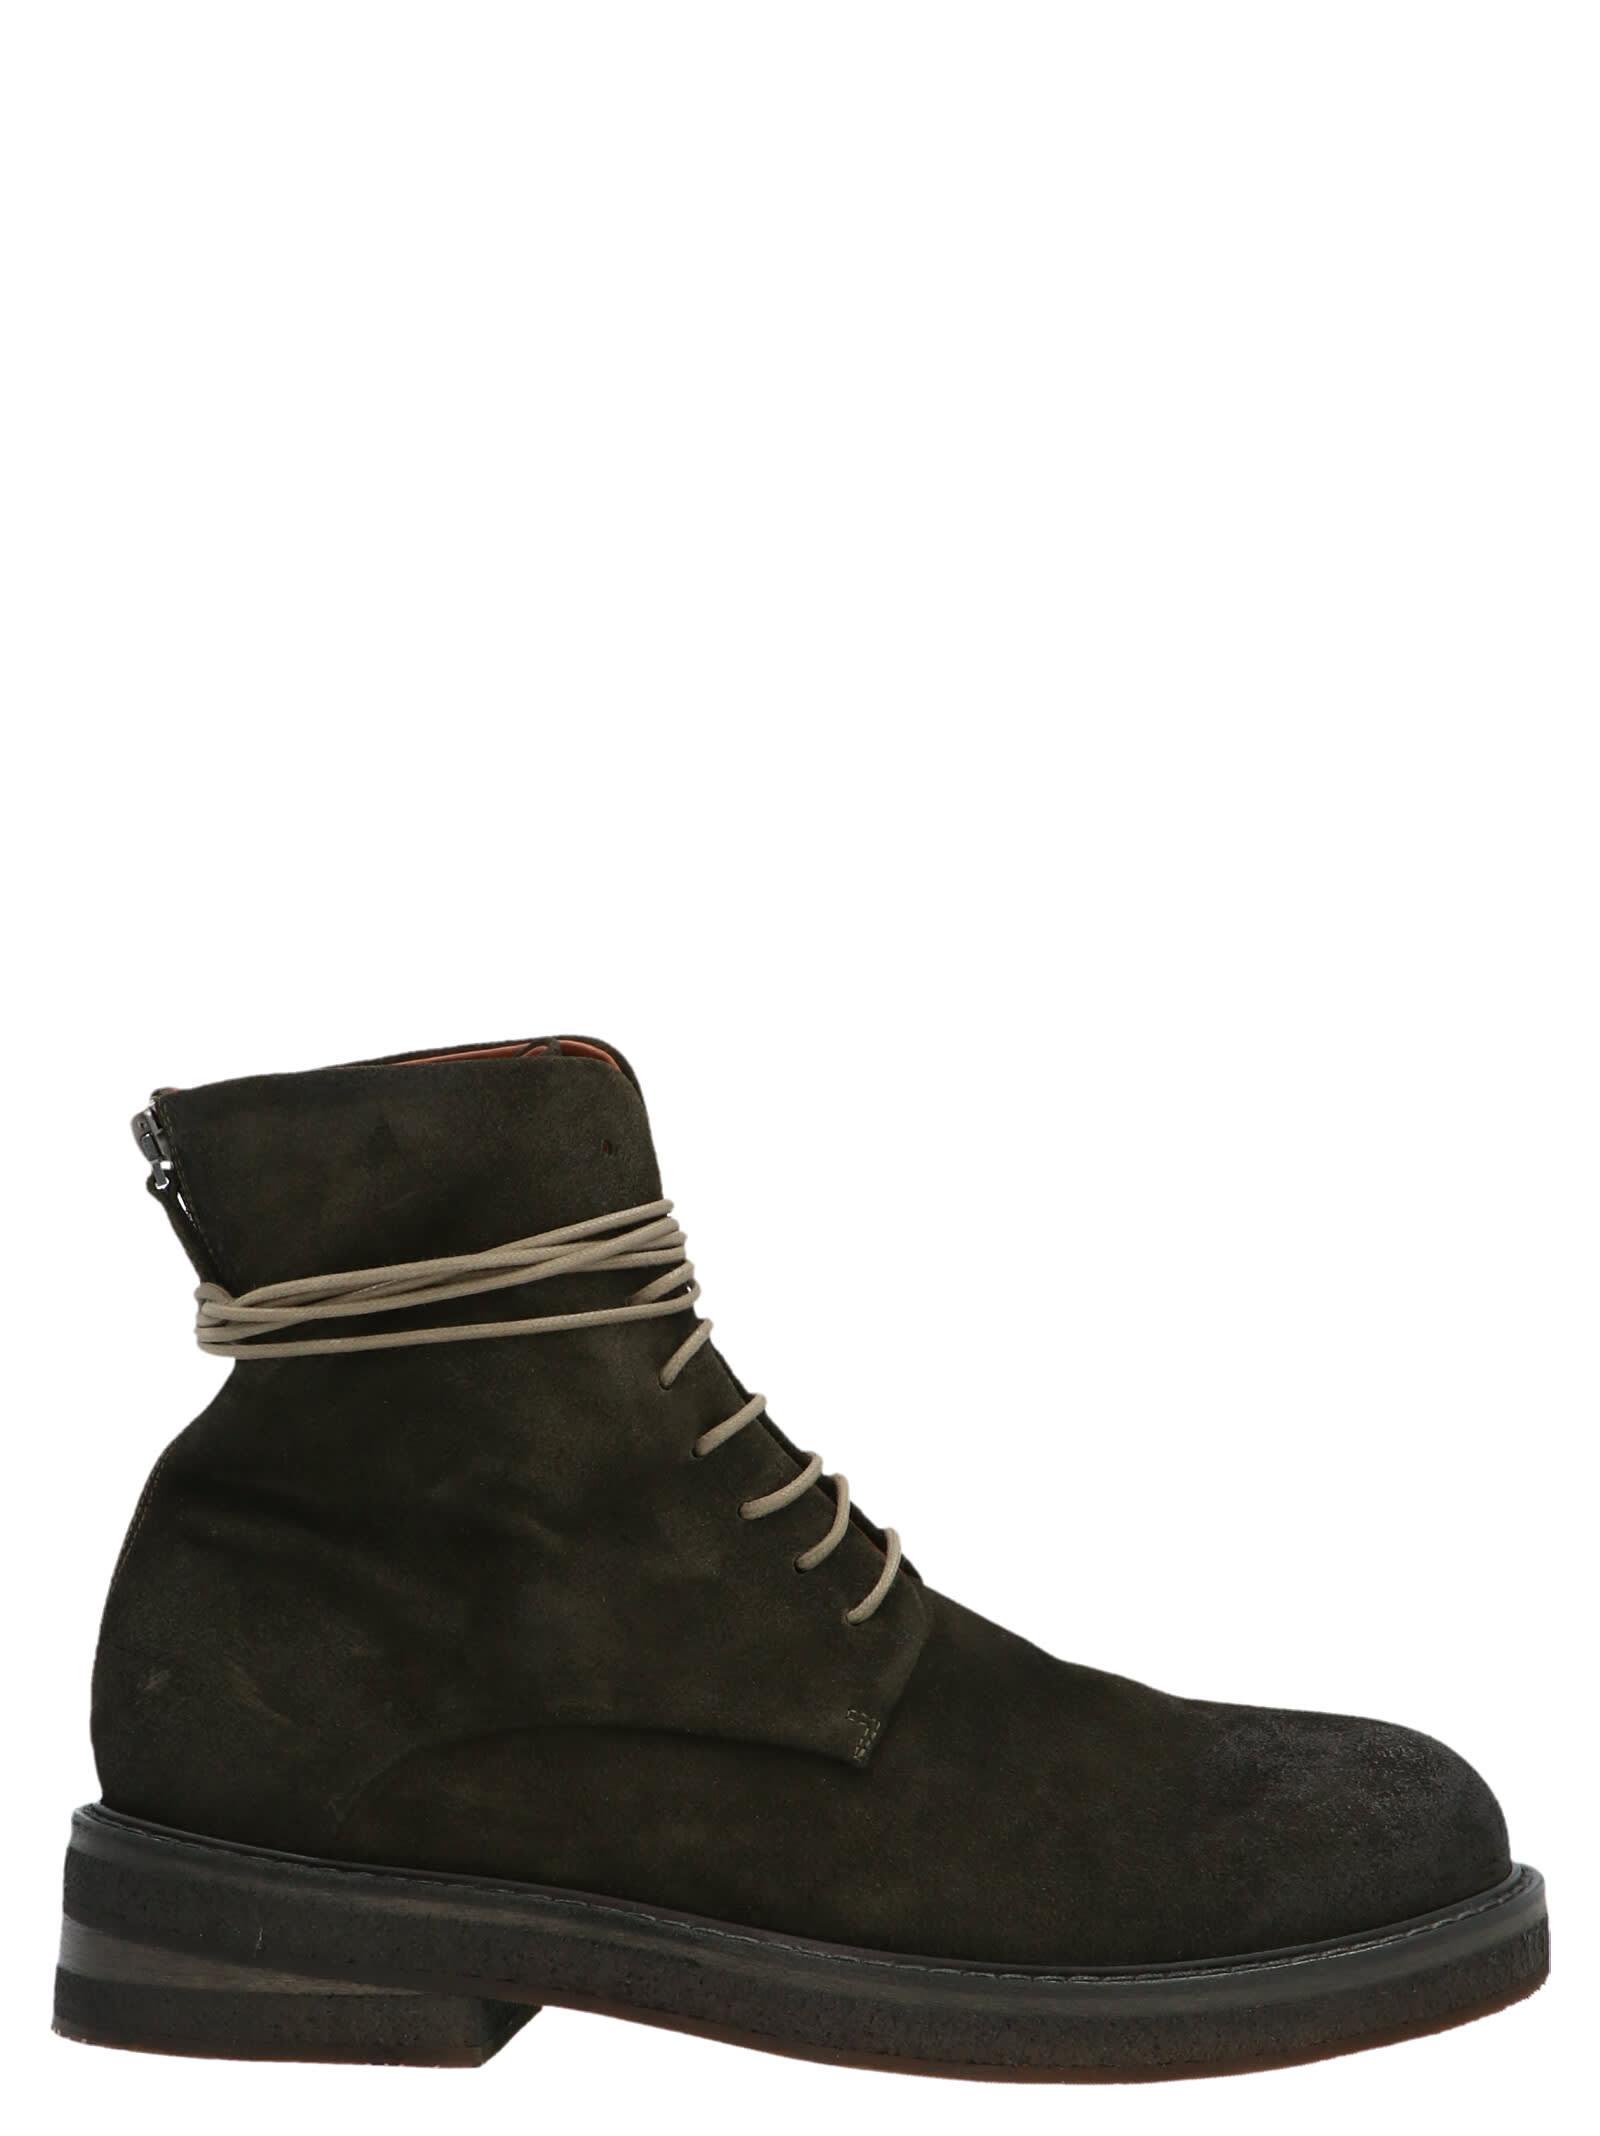 Marsell parrucca Shoes